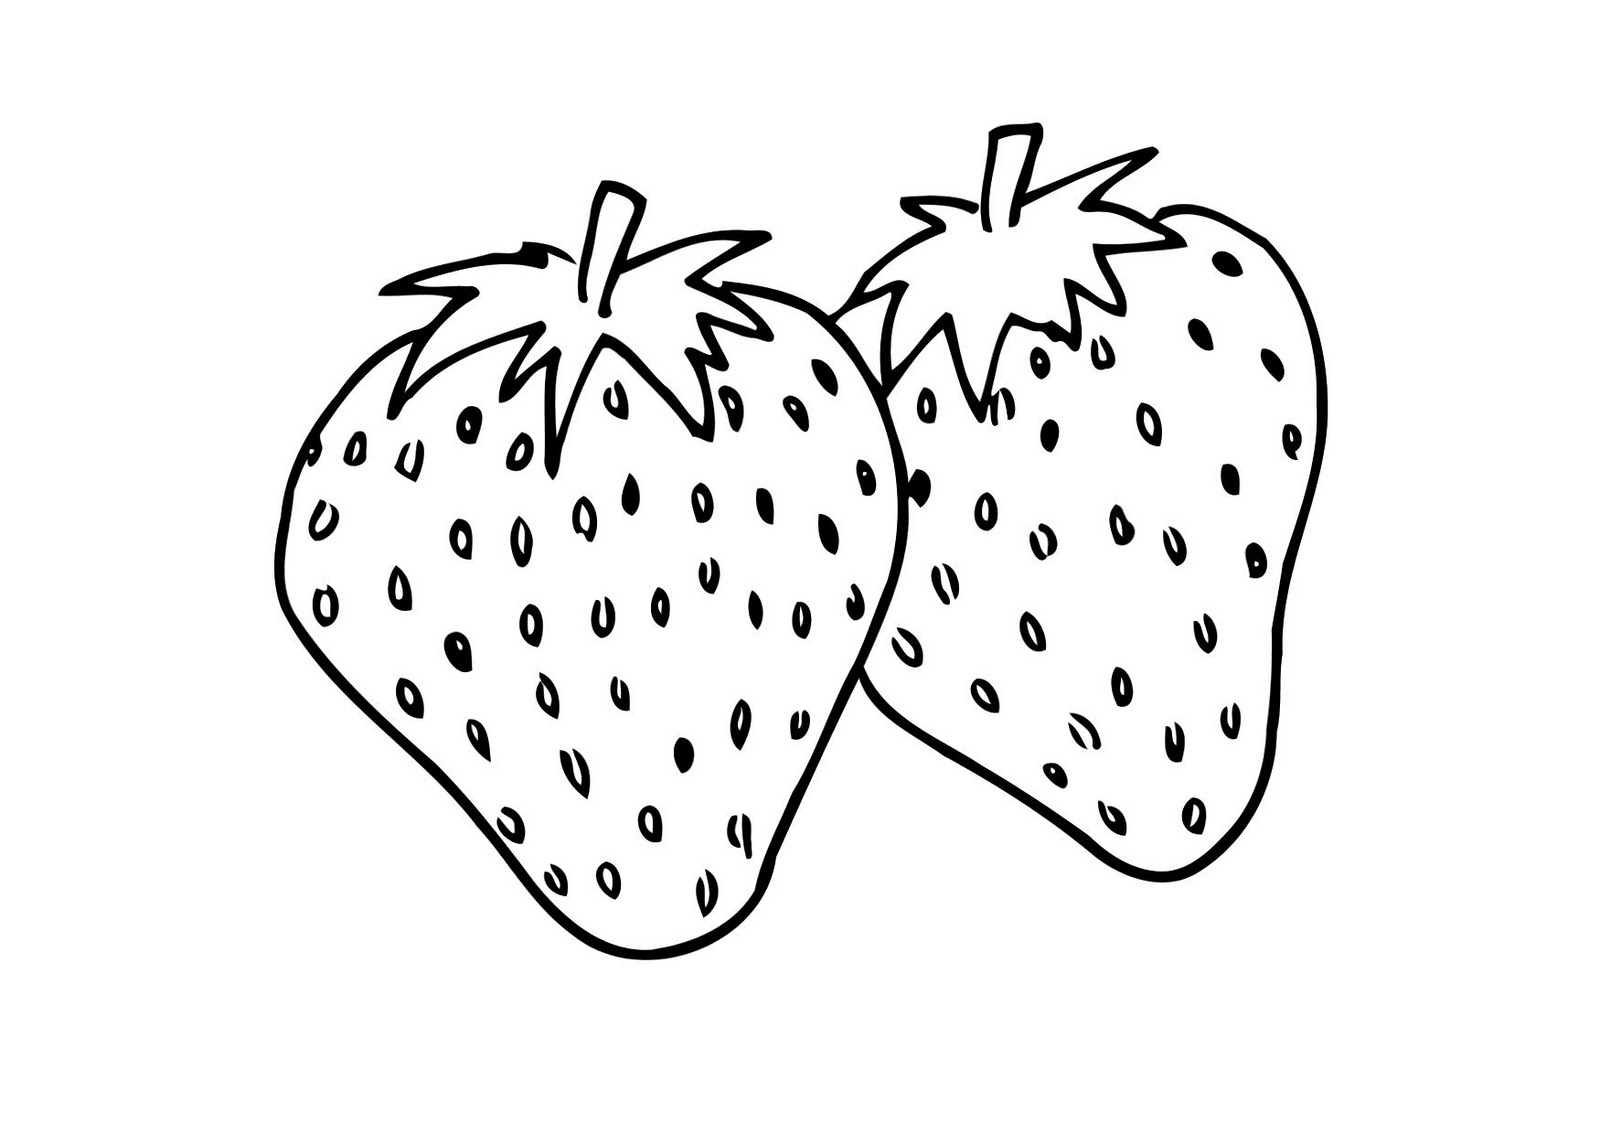 strawberry coloring image strawberries drawing at getdrawings free download image coloring strawberry